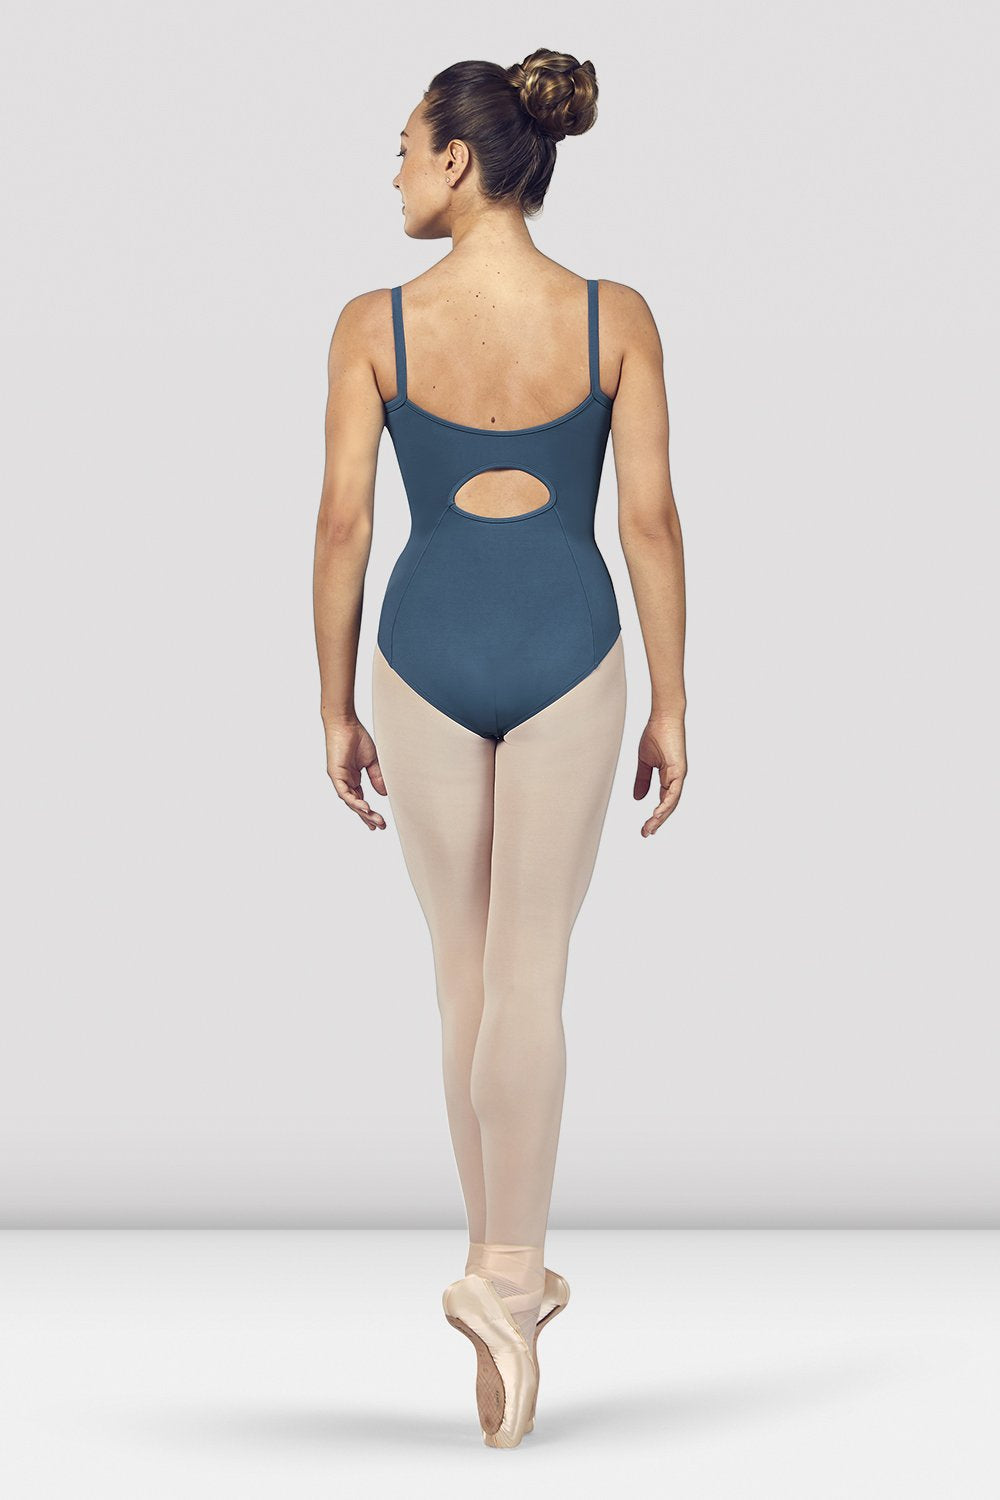 Seaport Bloch Ladies Vilette Zip Front Open Back Camisole Leotard on female model en pointe in fifth position facing back